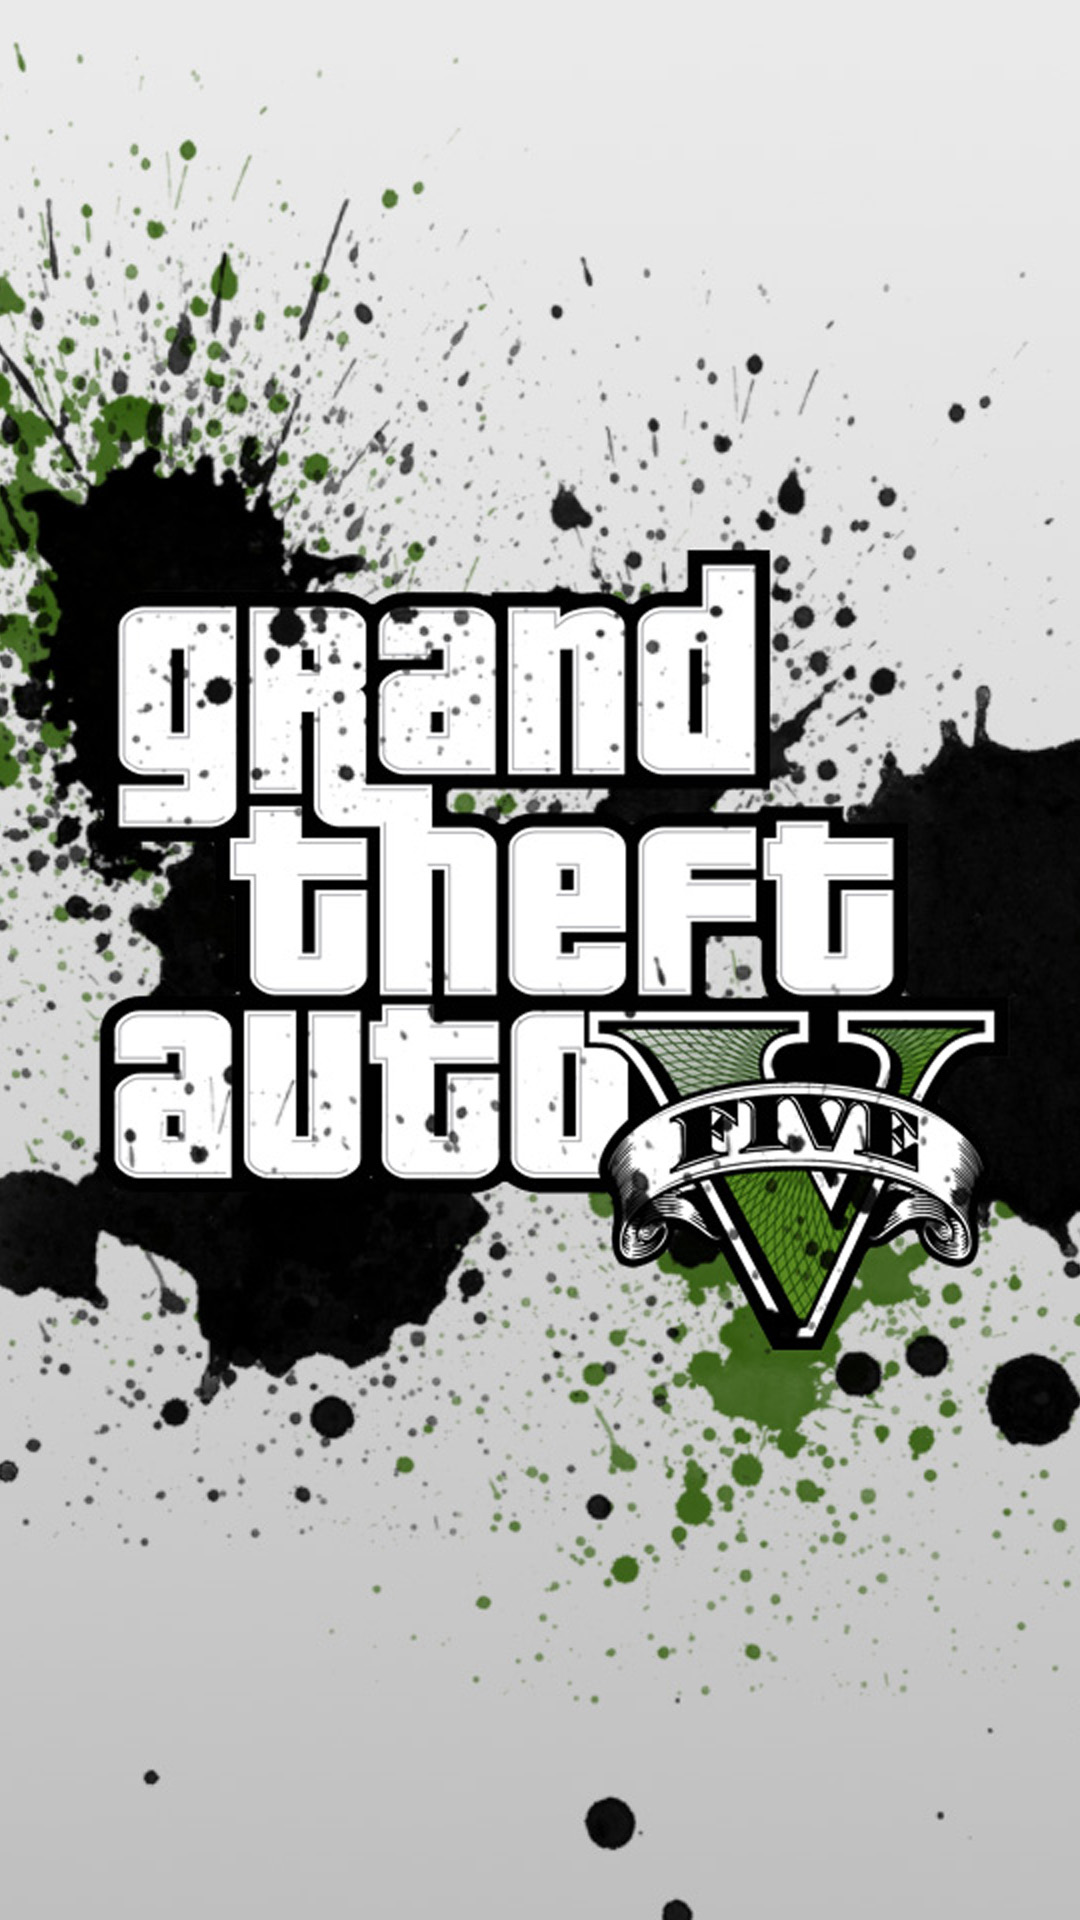 grand theft auto v hd wallpaper iphone 6 plus